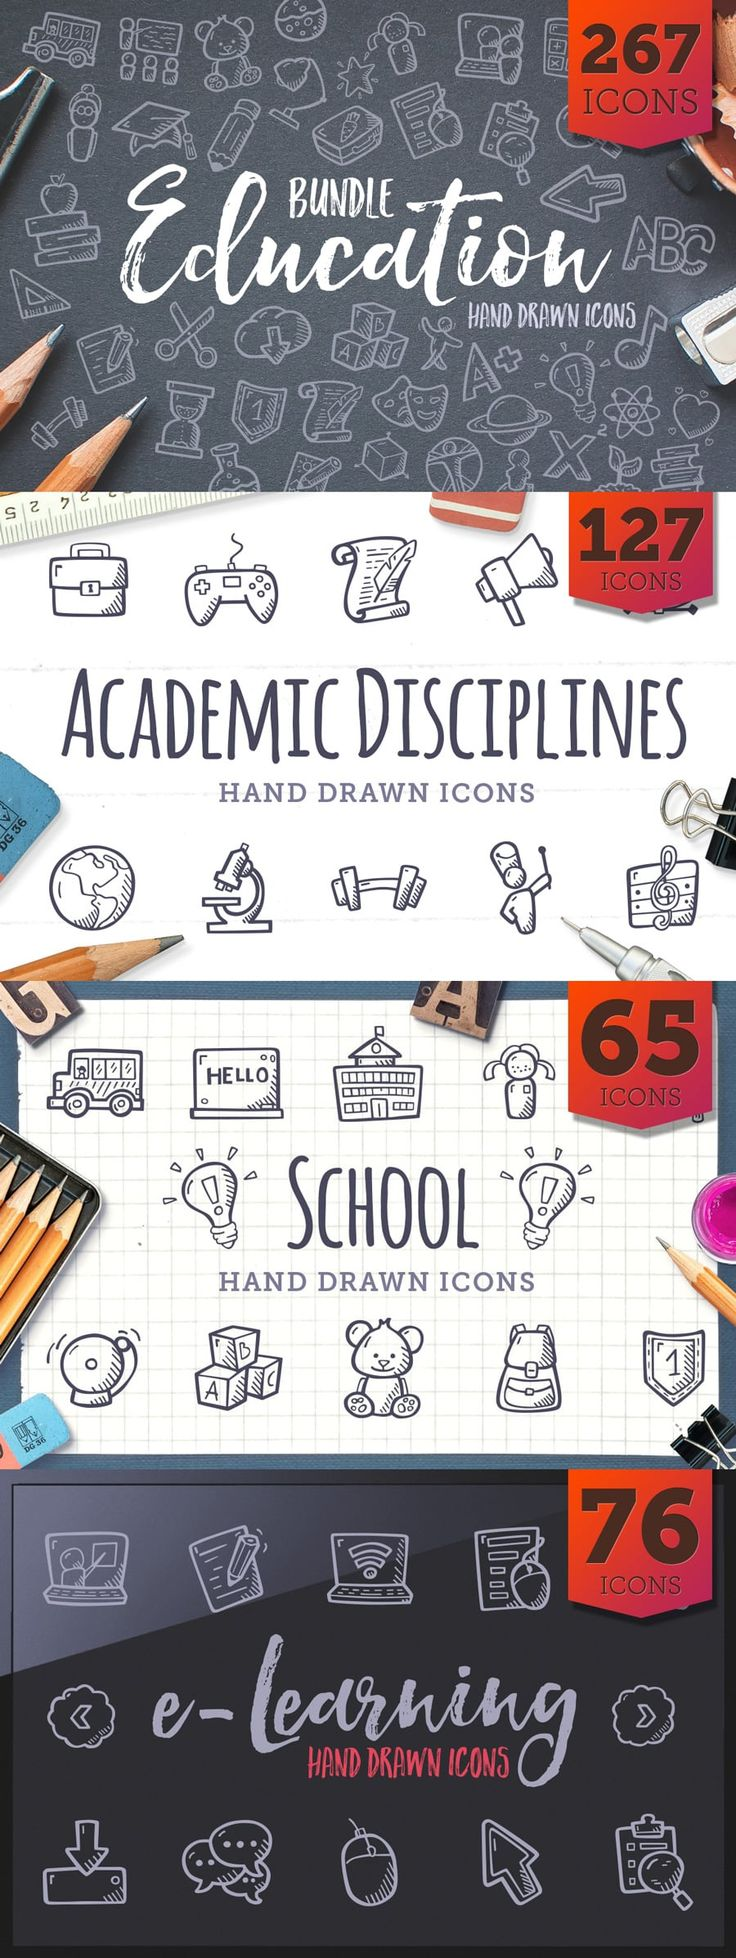 Education Icons made by @weboutloud #education #handdrawnicons #icons #doodle	#drawing #clipart #e-learning #tinyart #icon #icondesign #handdrawn #iconset #bundle #creativemarket